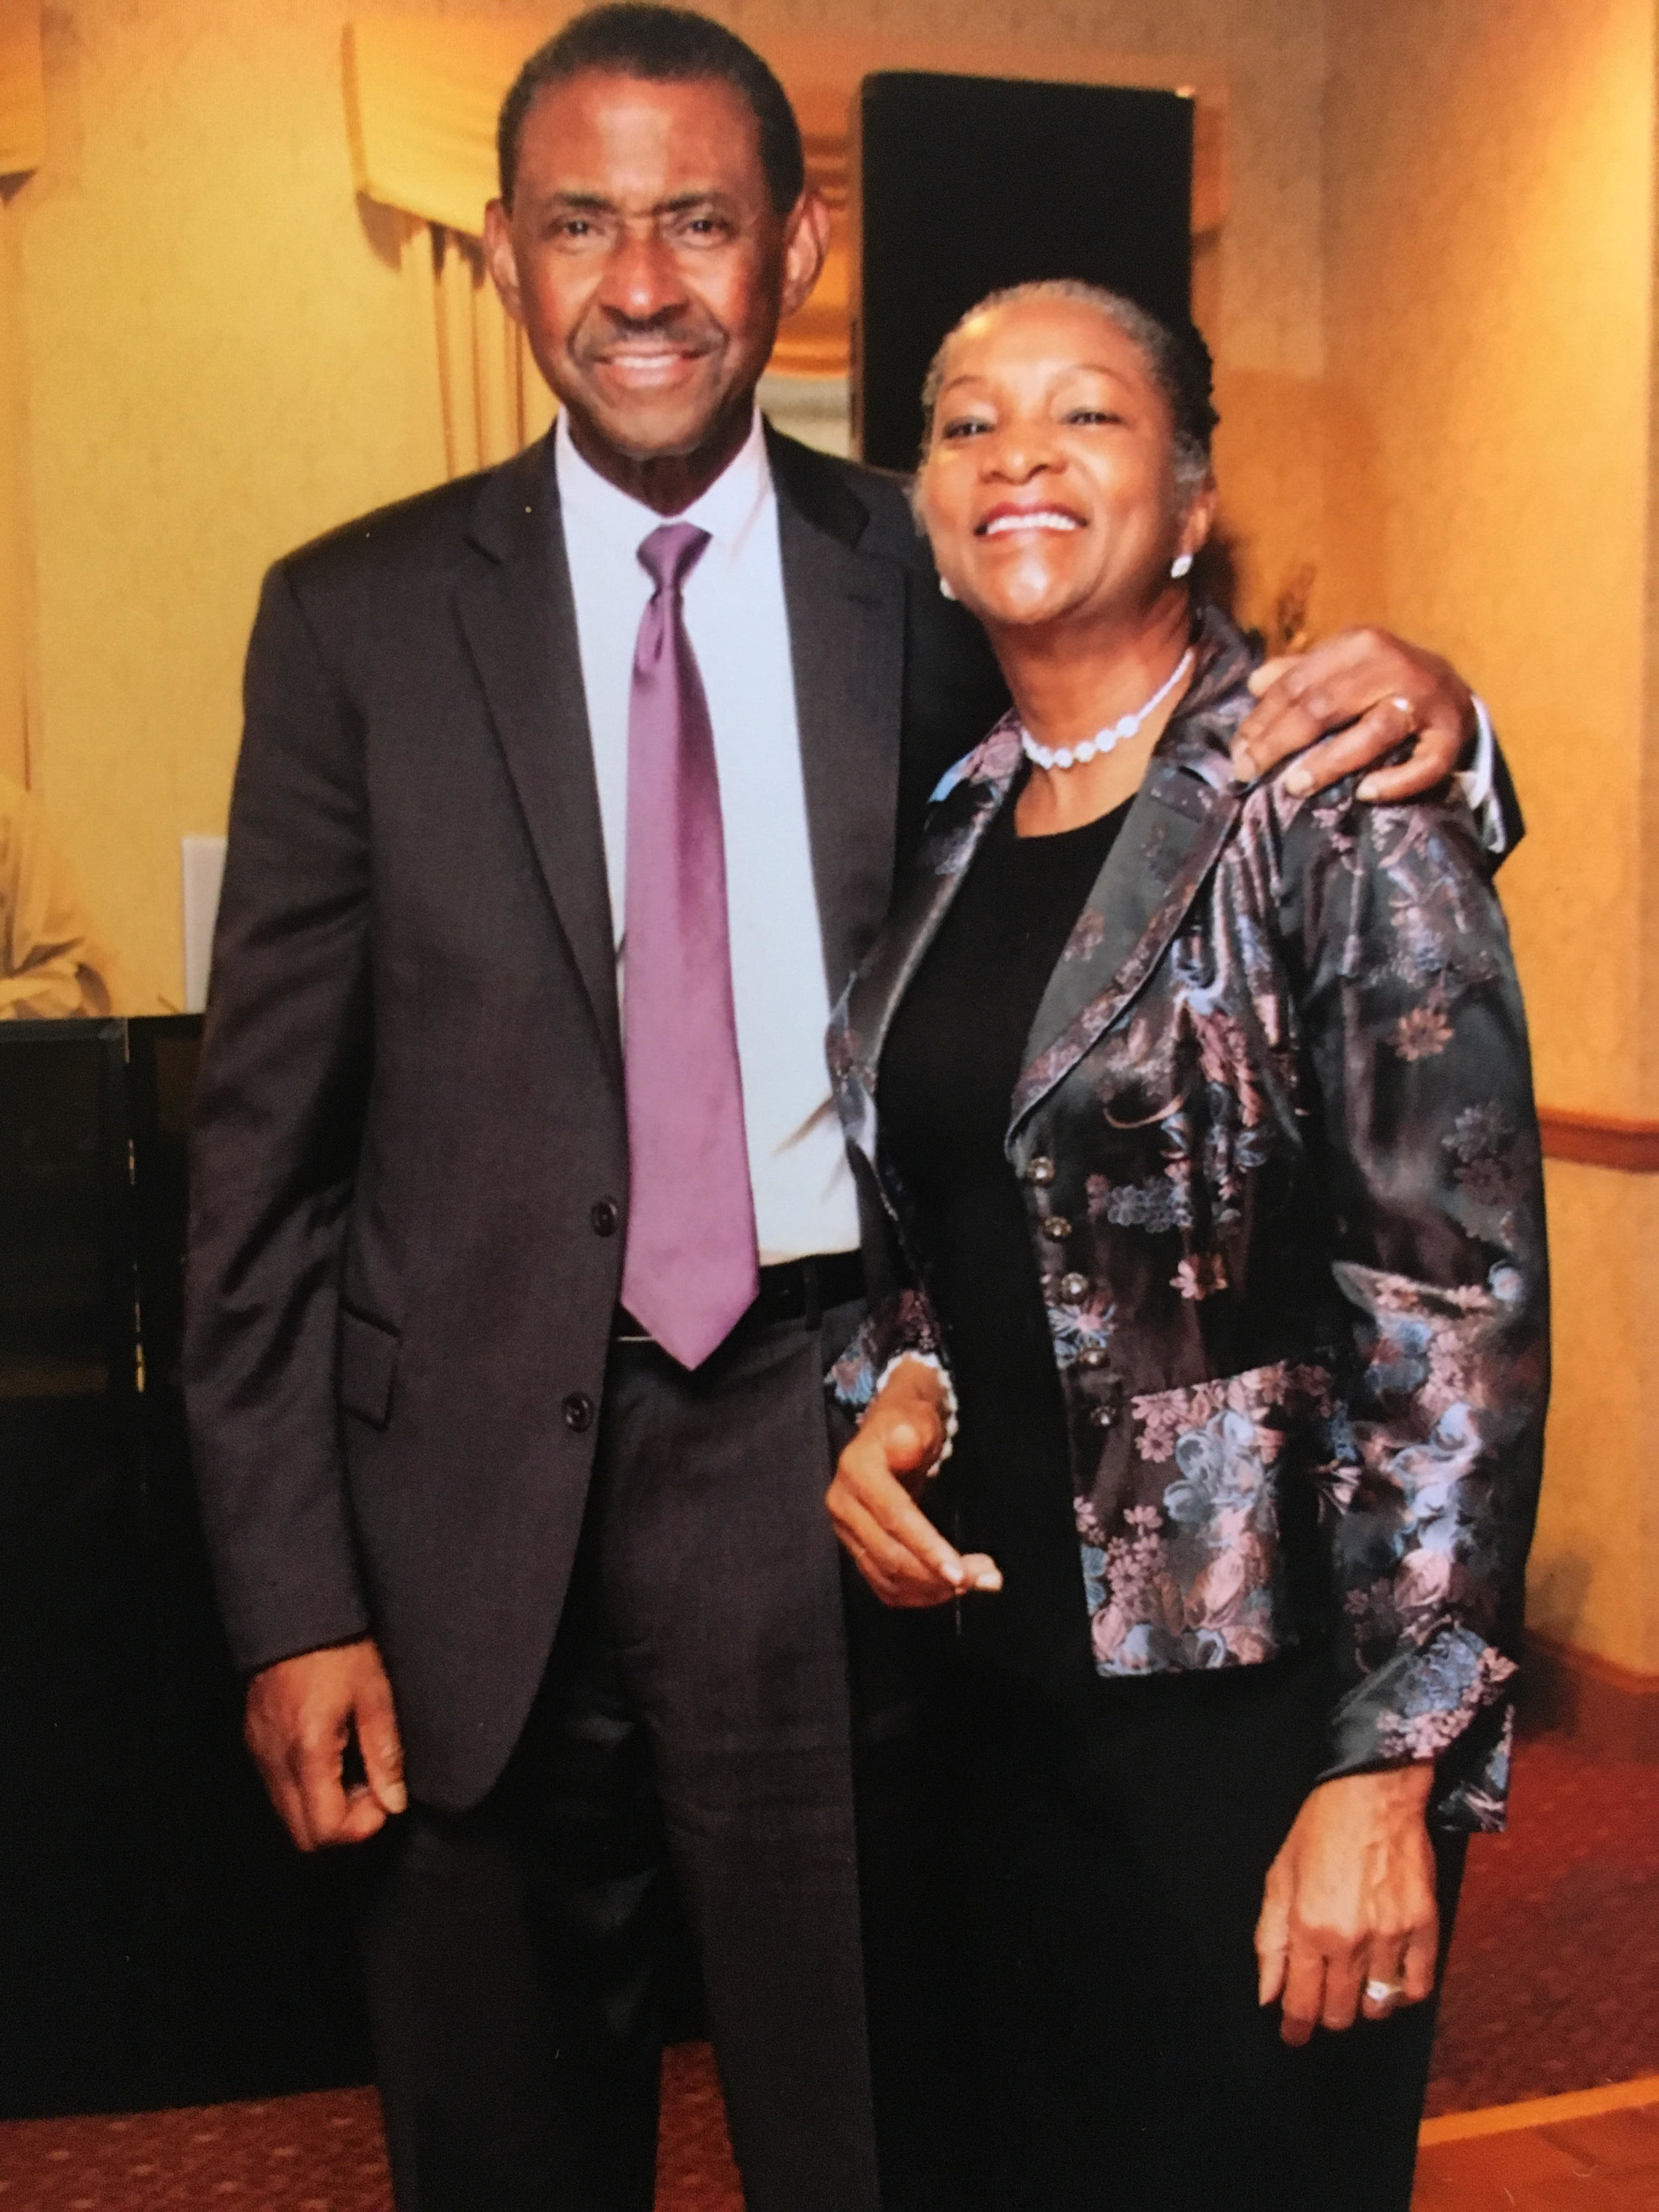 My dad with Dr. Melodie Toby, my mom. They met while both attending Harvard Business School.